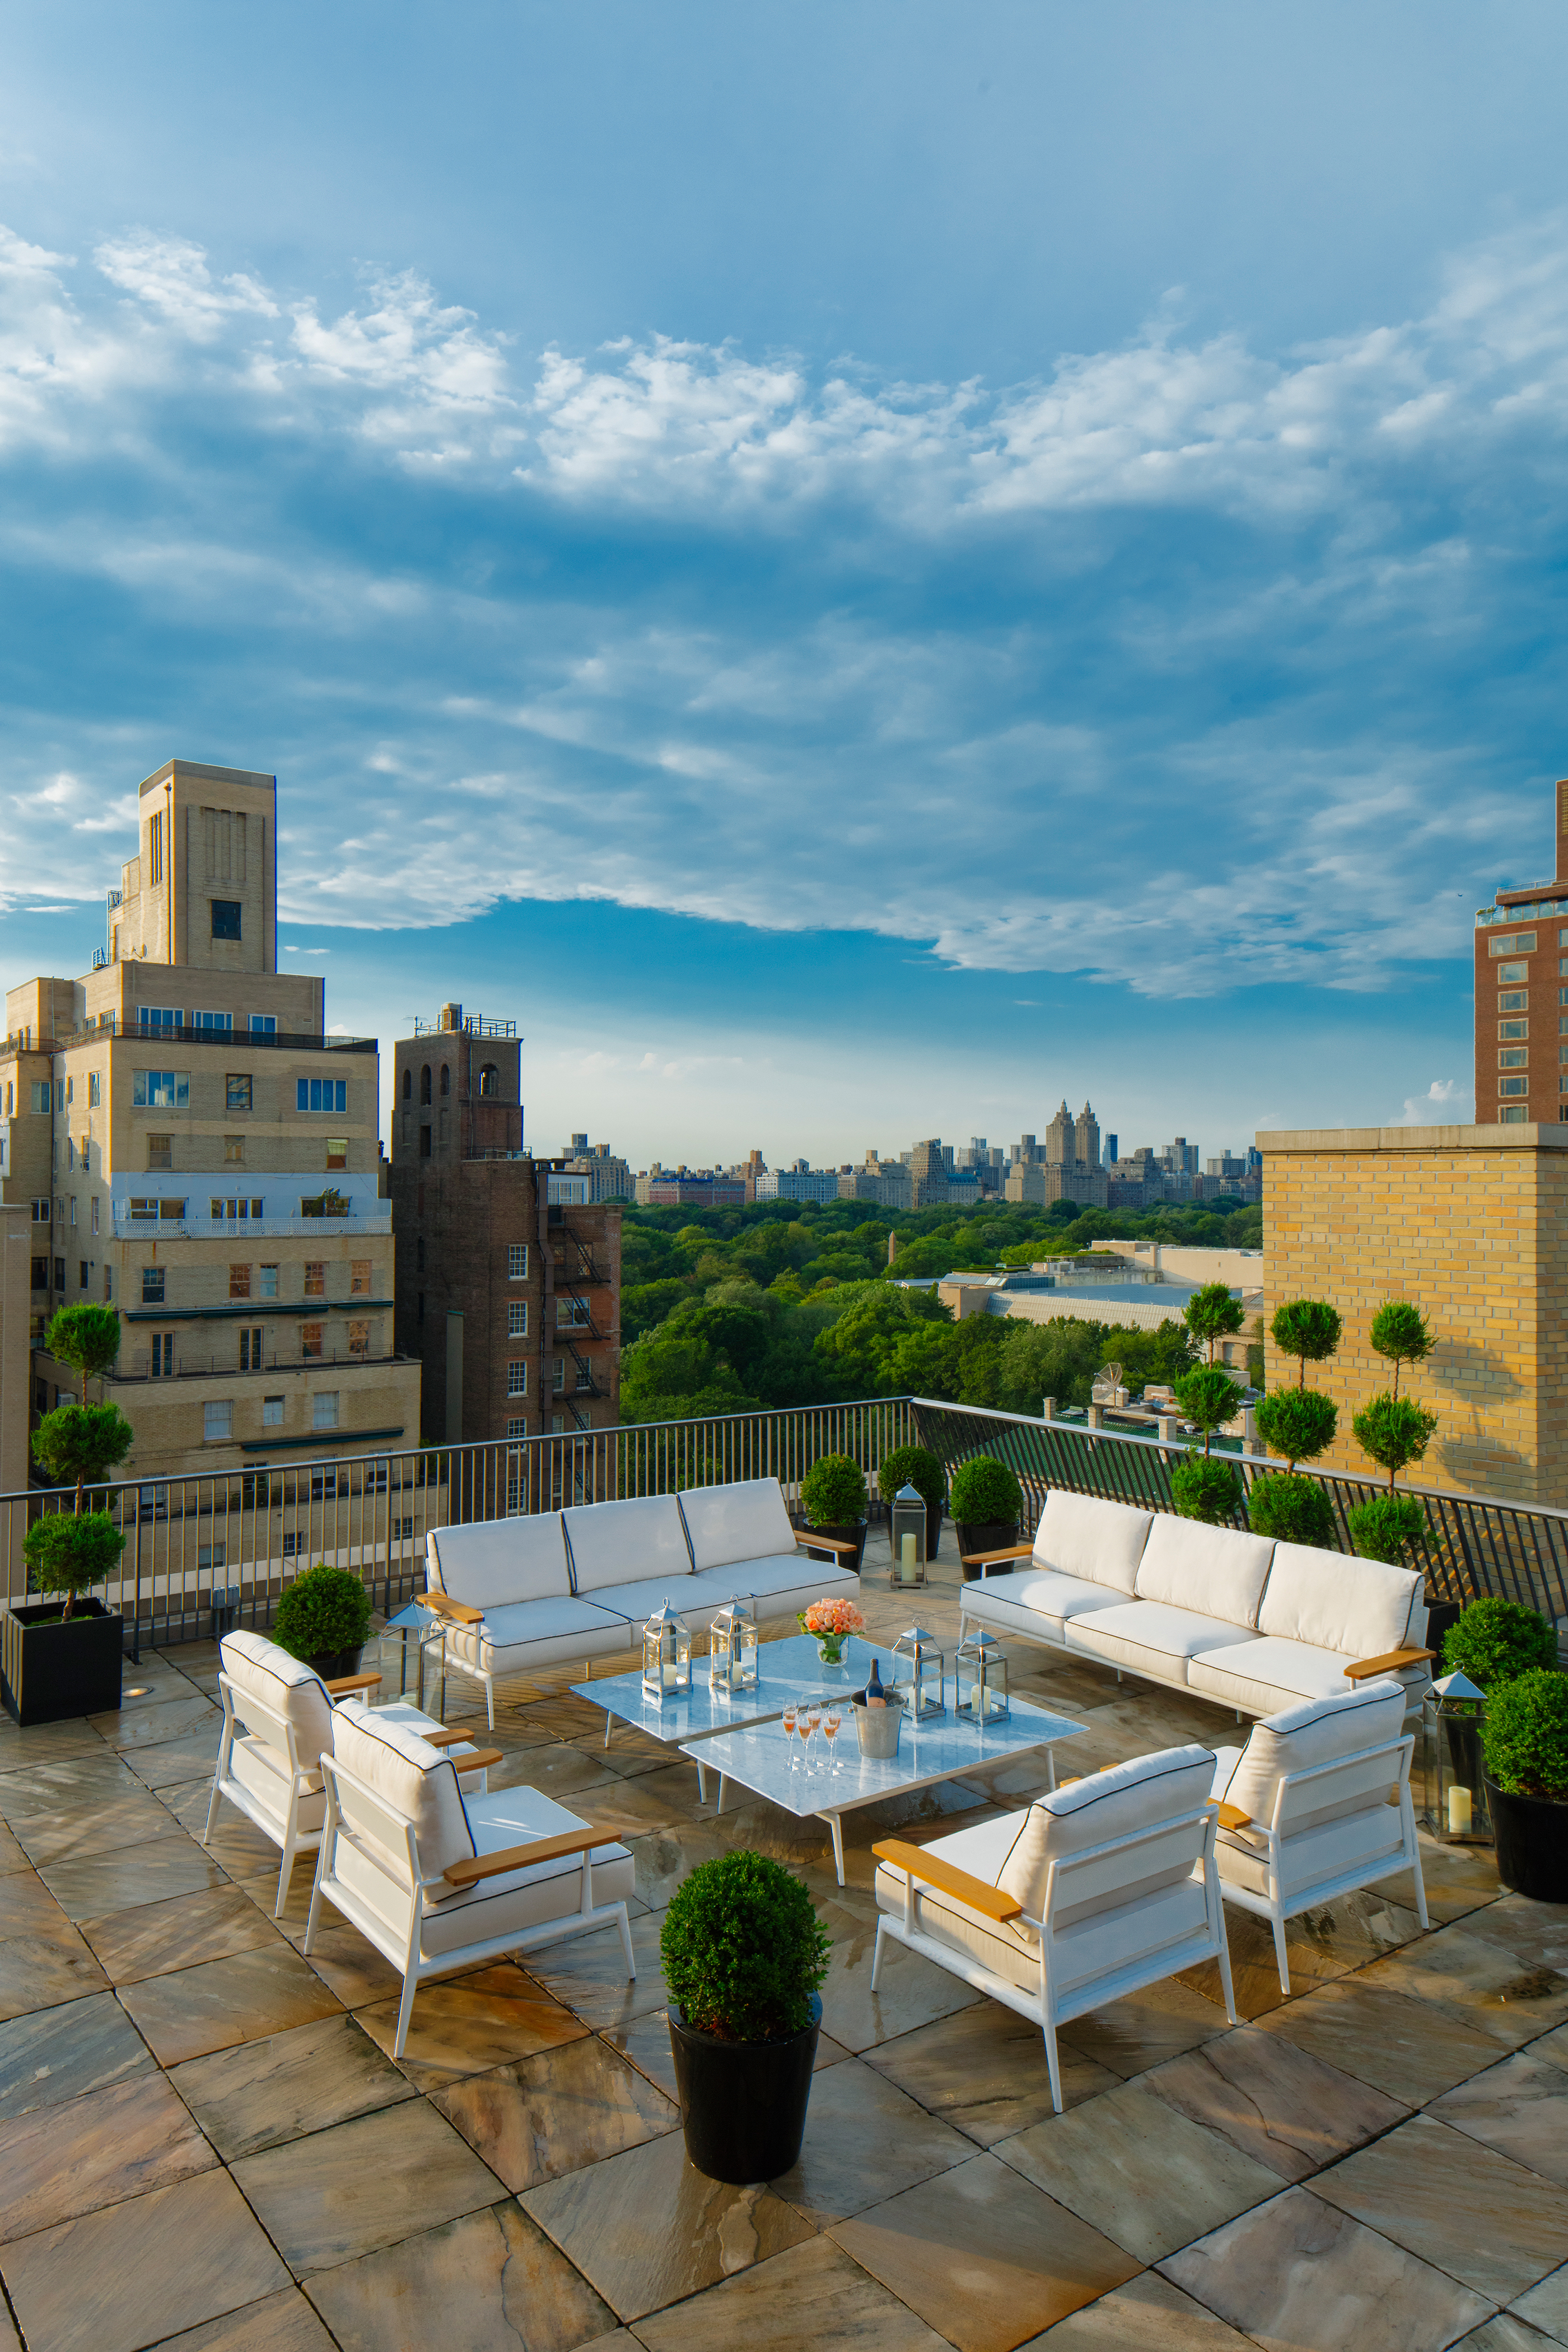 171102-lavish-hotel-rooms-the-mark-hotel-grand-penthouse-new-york-city